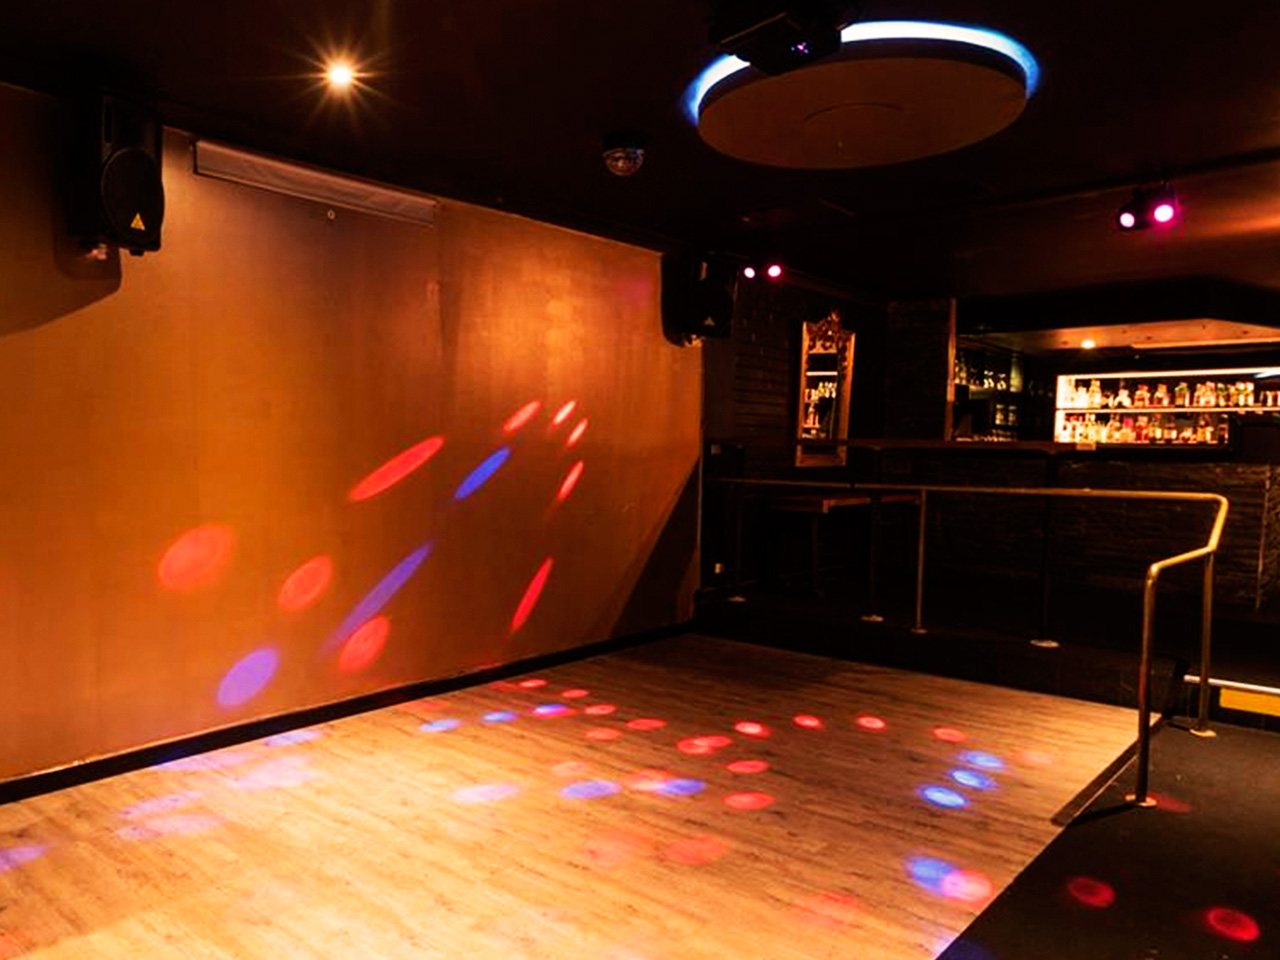 Dance Floor And A Mini Bar Behind Inside The Function Room